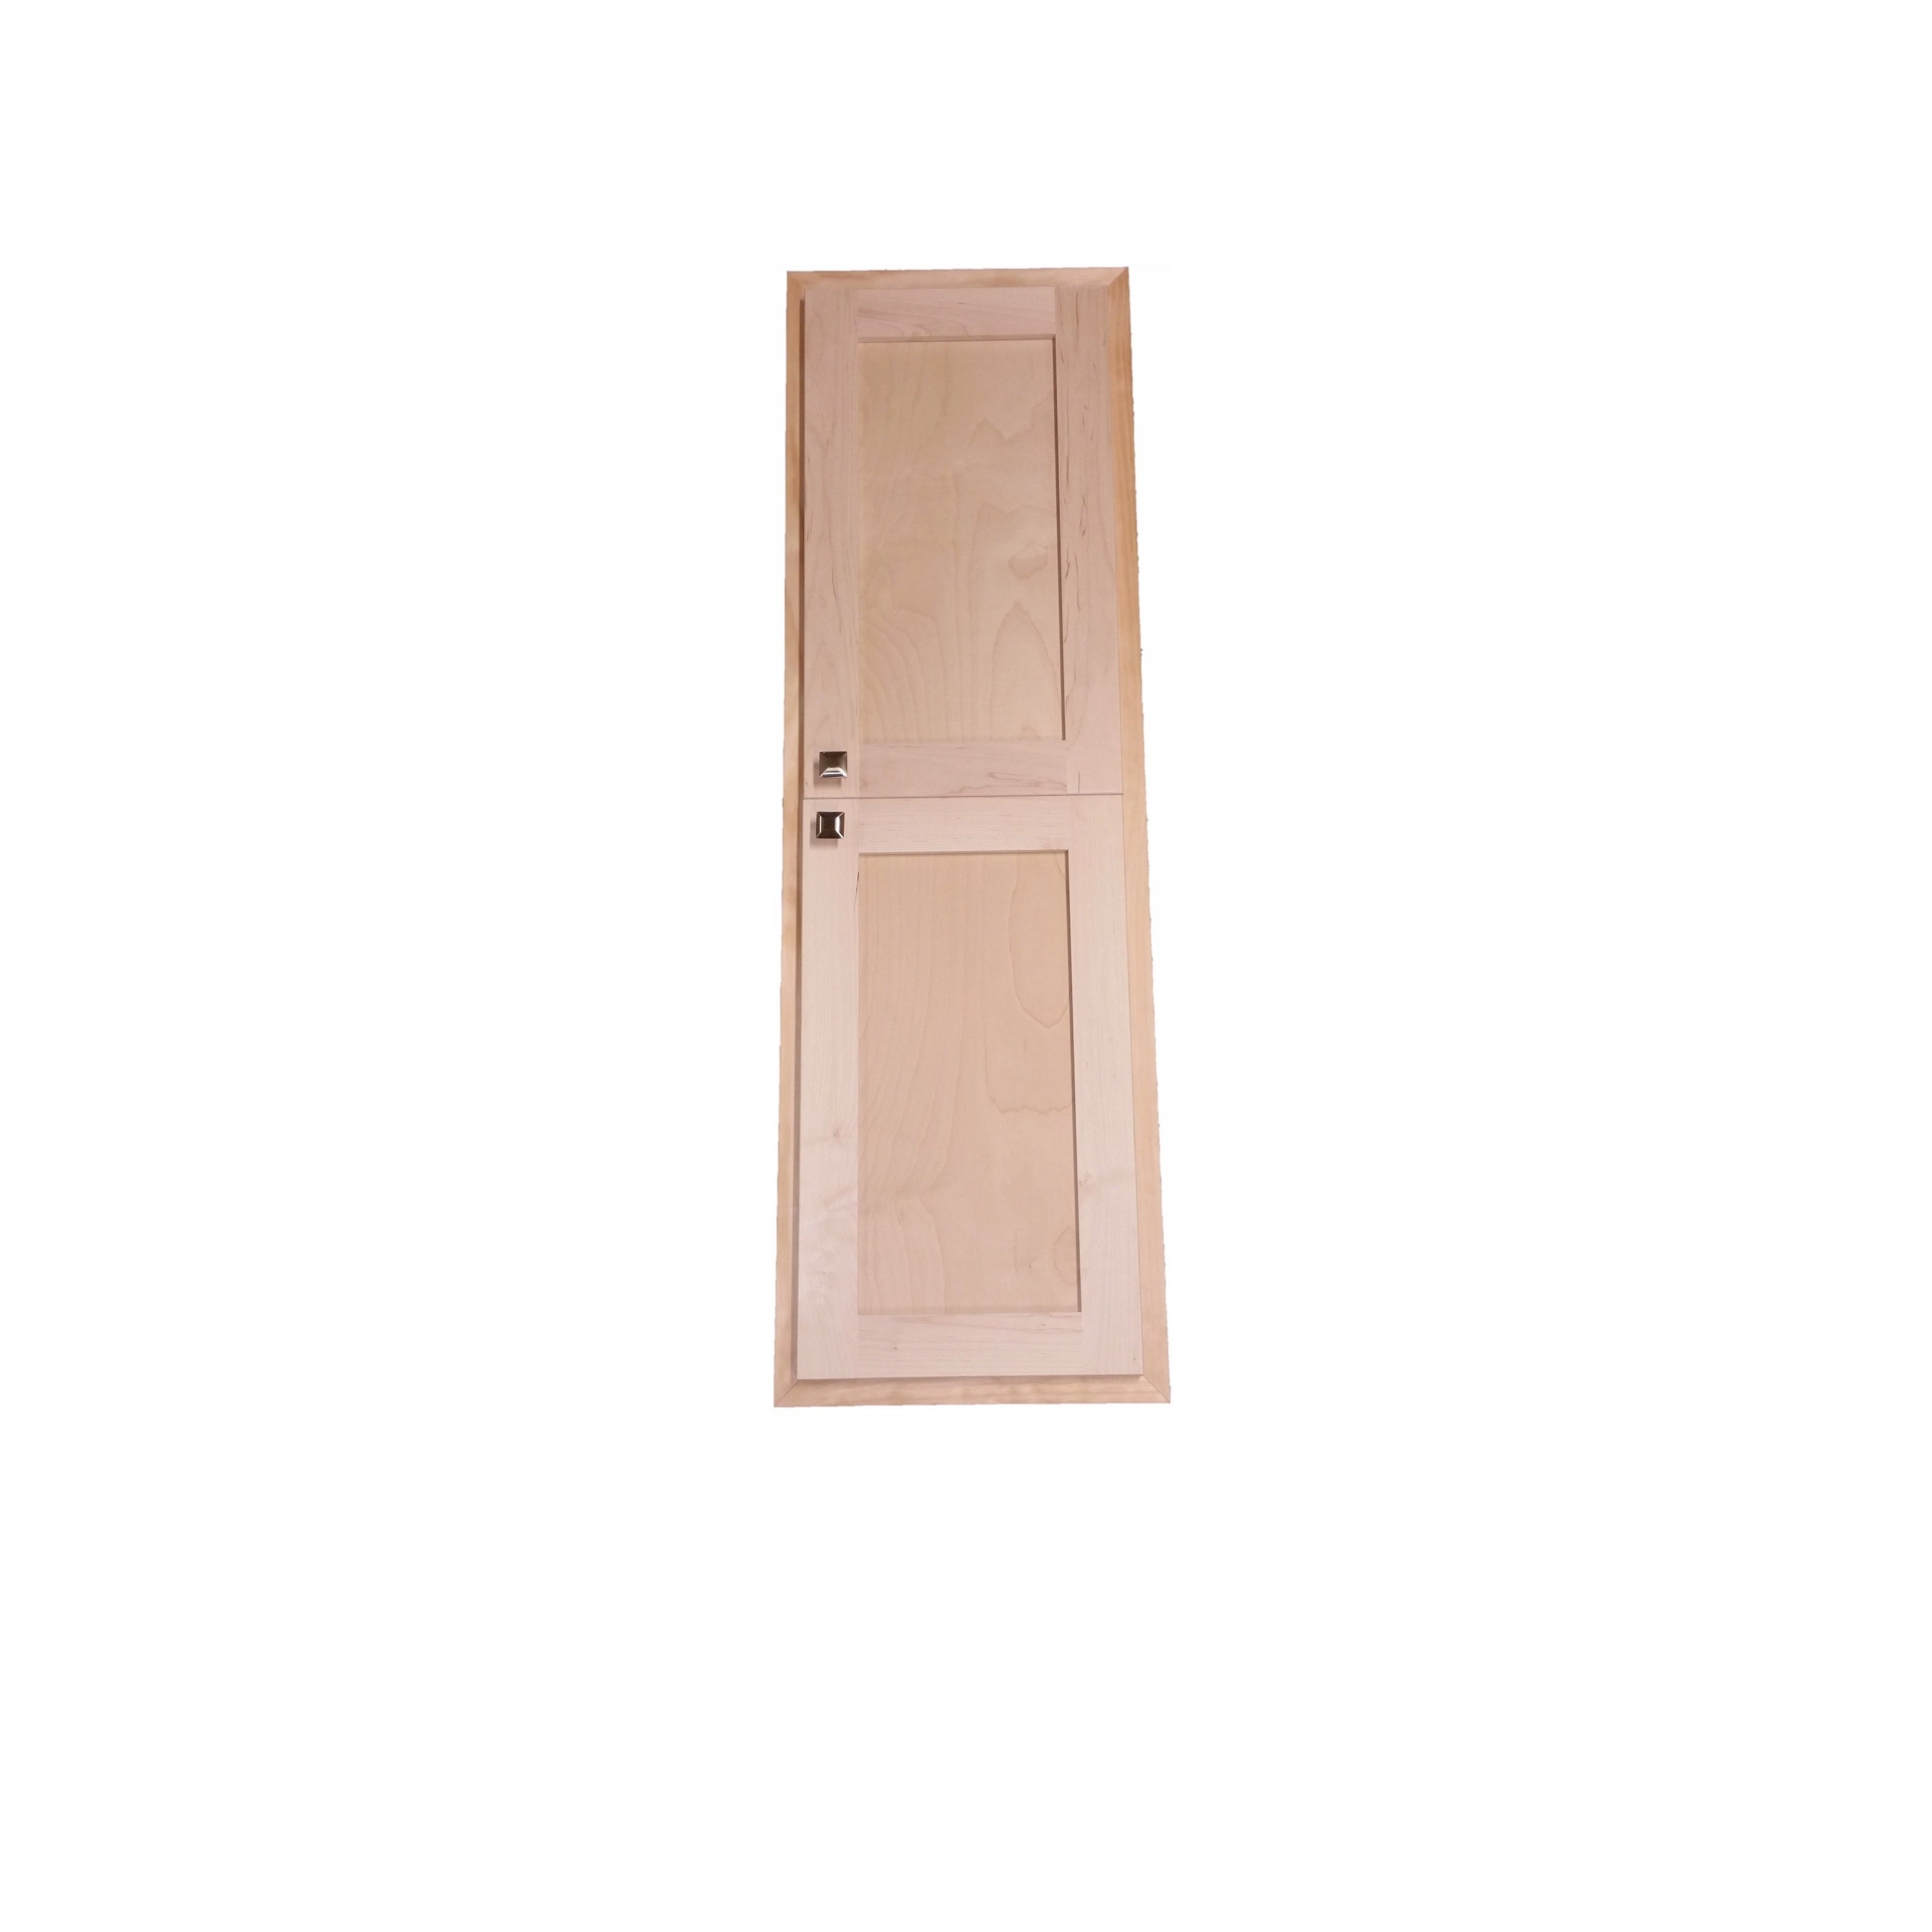 WG Wood Products 48-inch High x 2.5-inch Deep Recessed In...